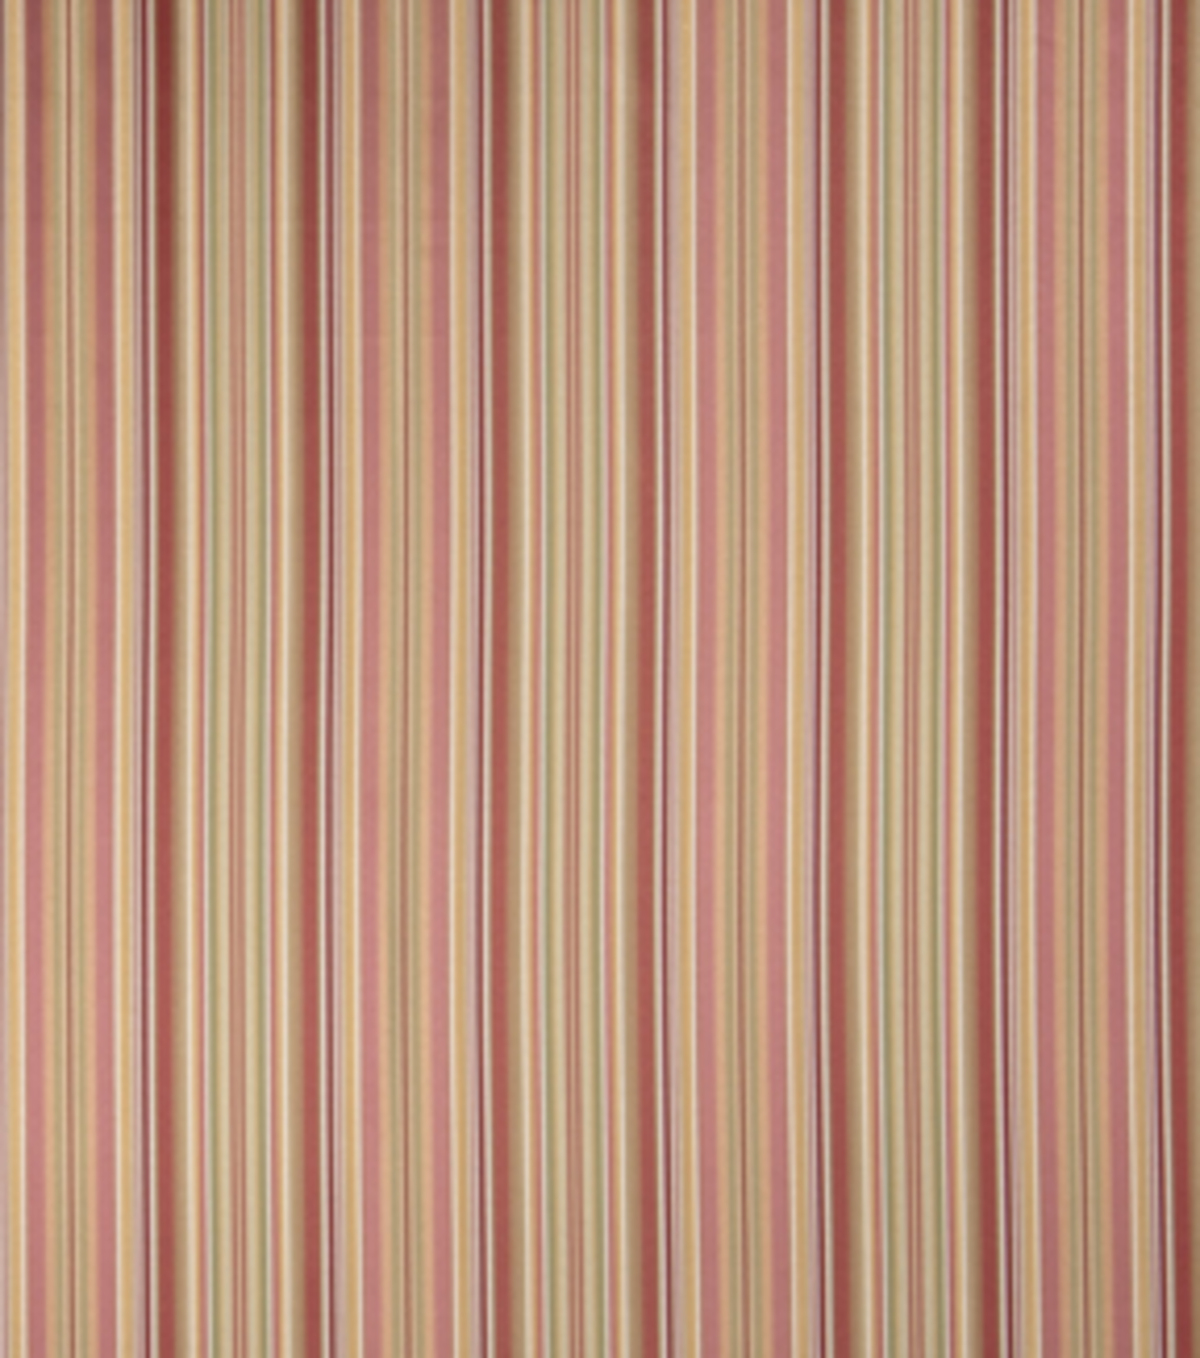 Home Decor 8\u0022x8\u0022 Fabric Swatch-Print Fabric Eaton Square Mention Spring